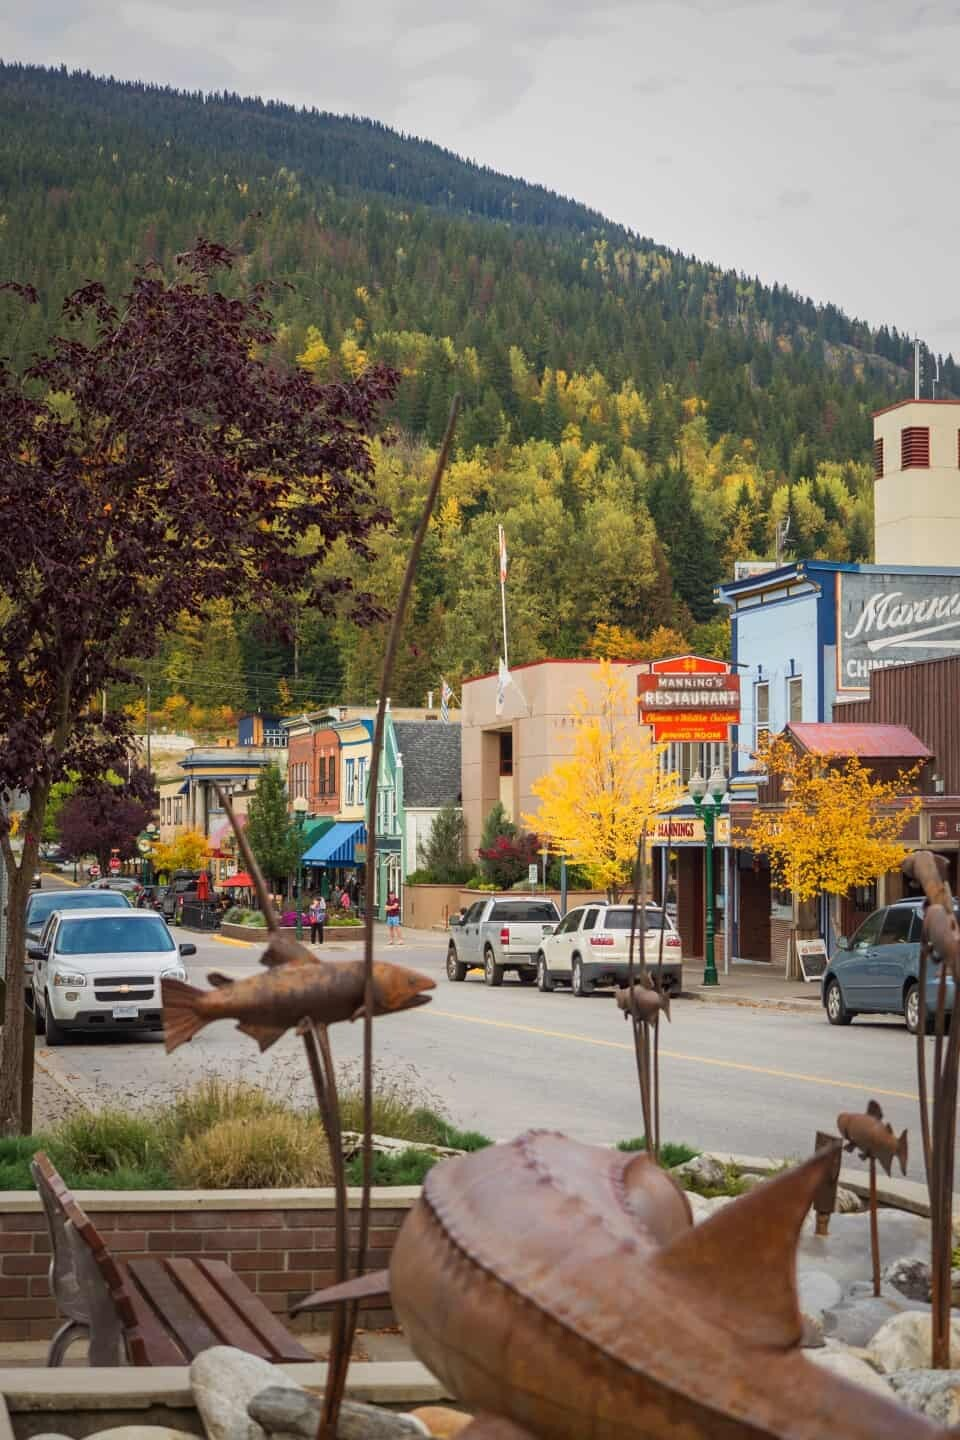 Revelstoke, Canada - Kootenay Rockies, British Columbia guide to Golden and Revelstoke